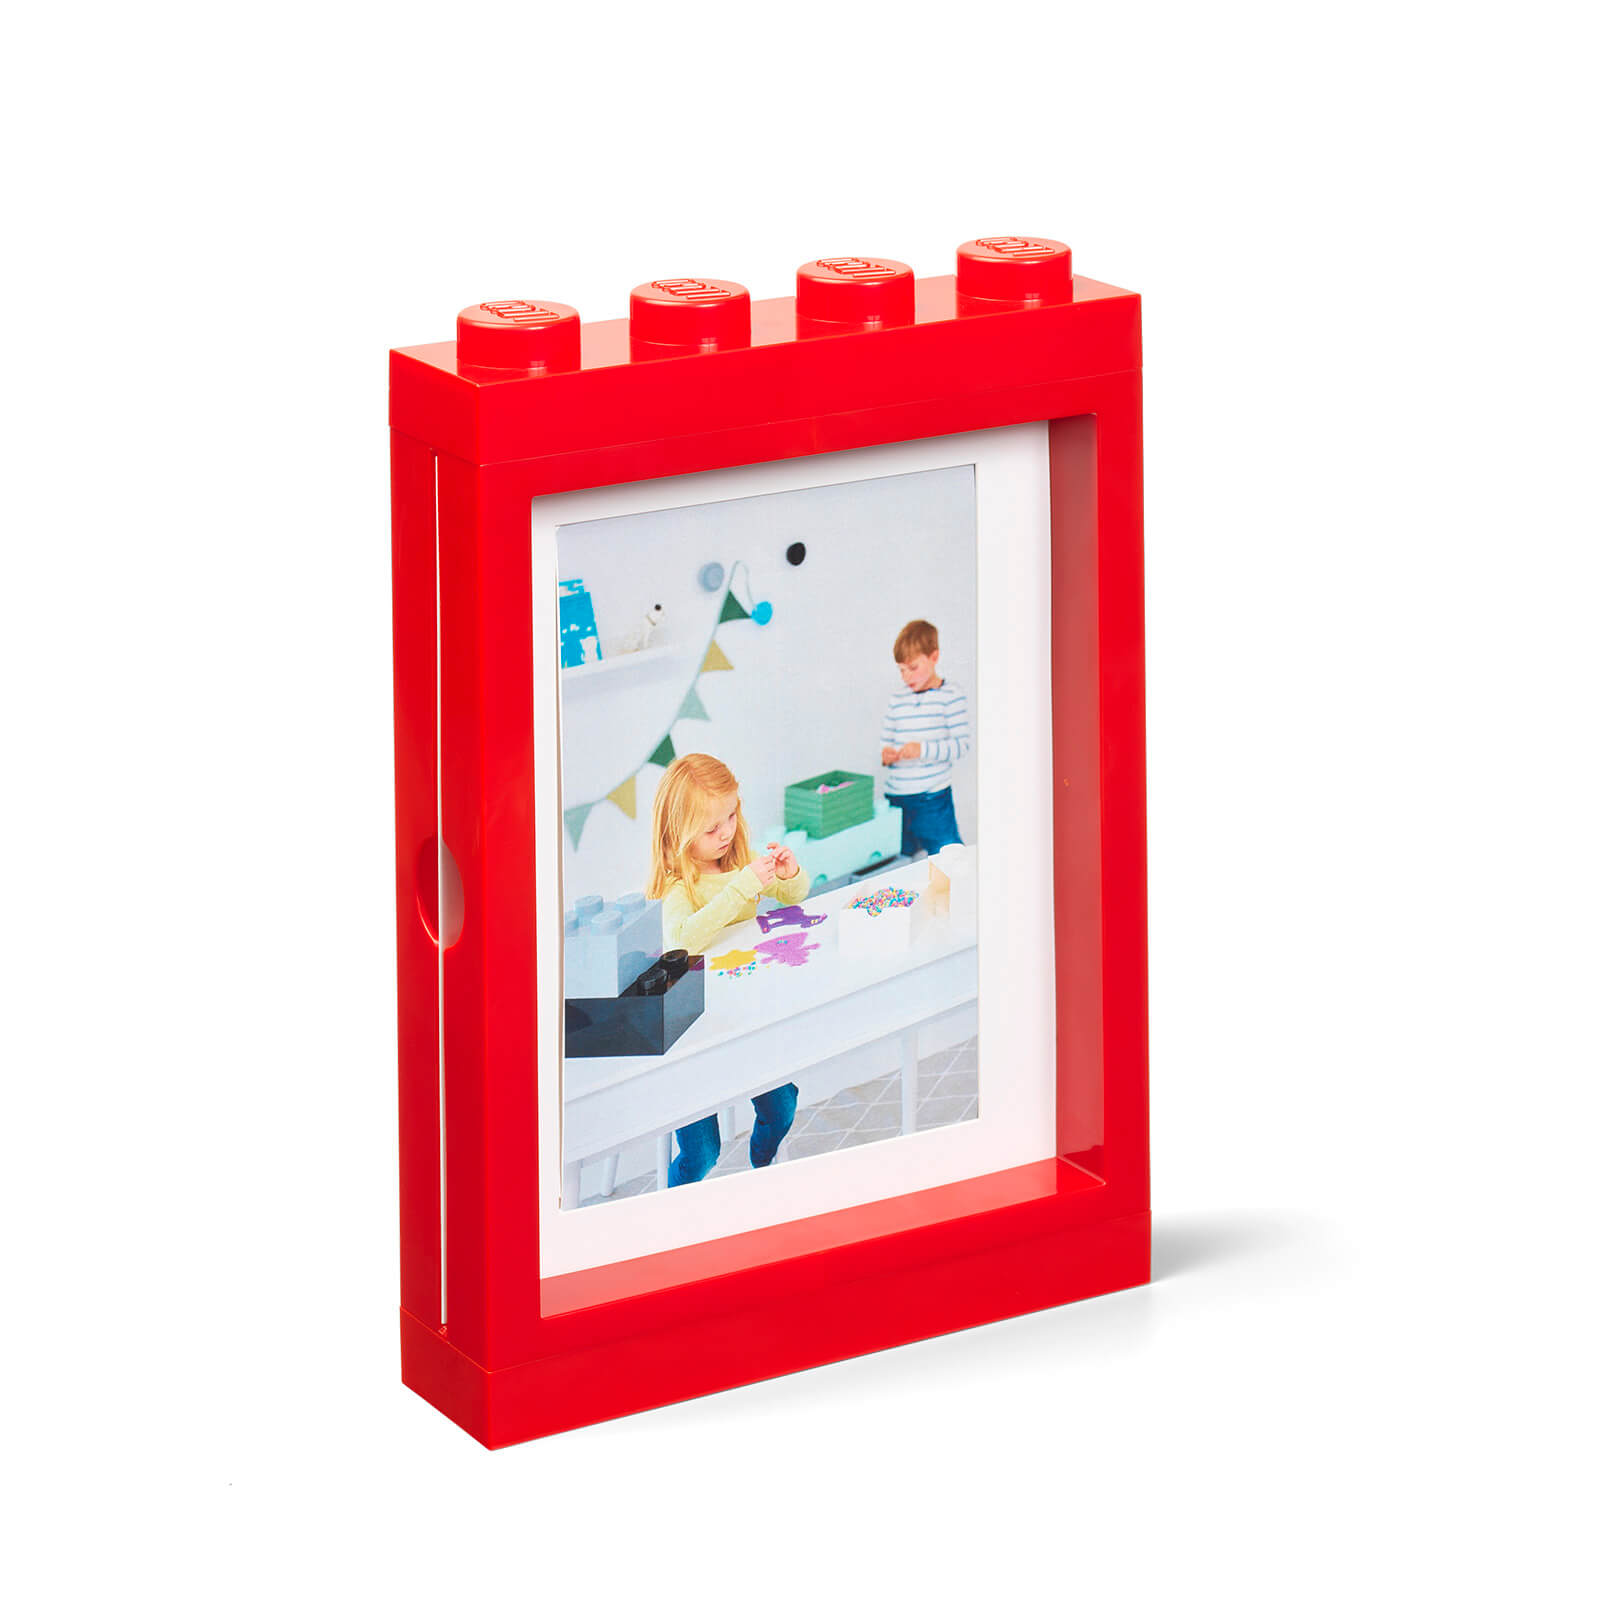 Image of LEGO Picture Frame - Red